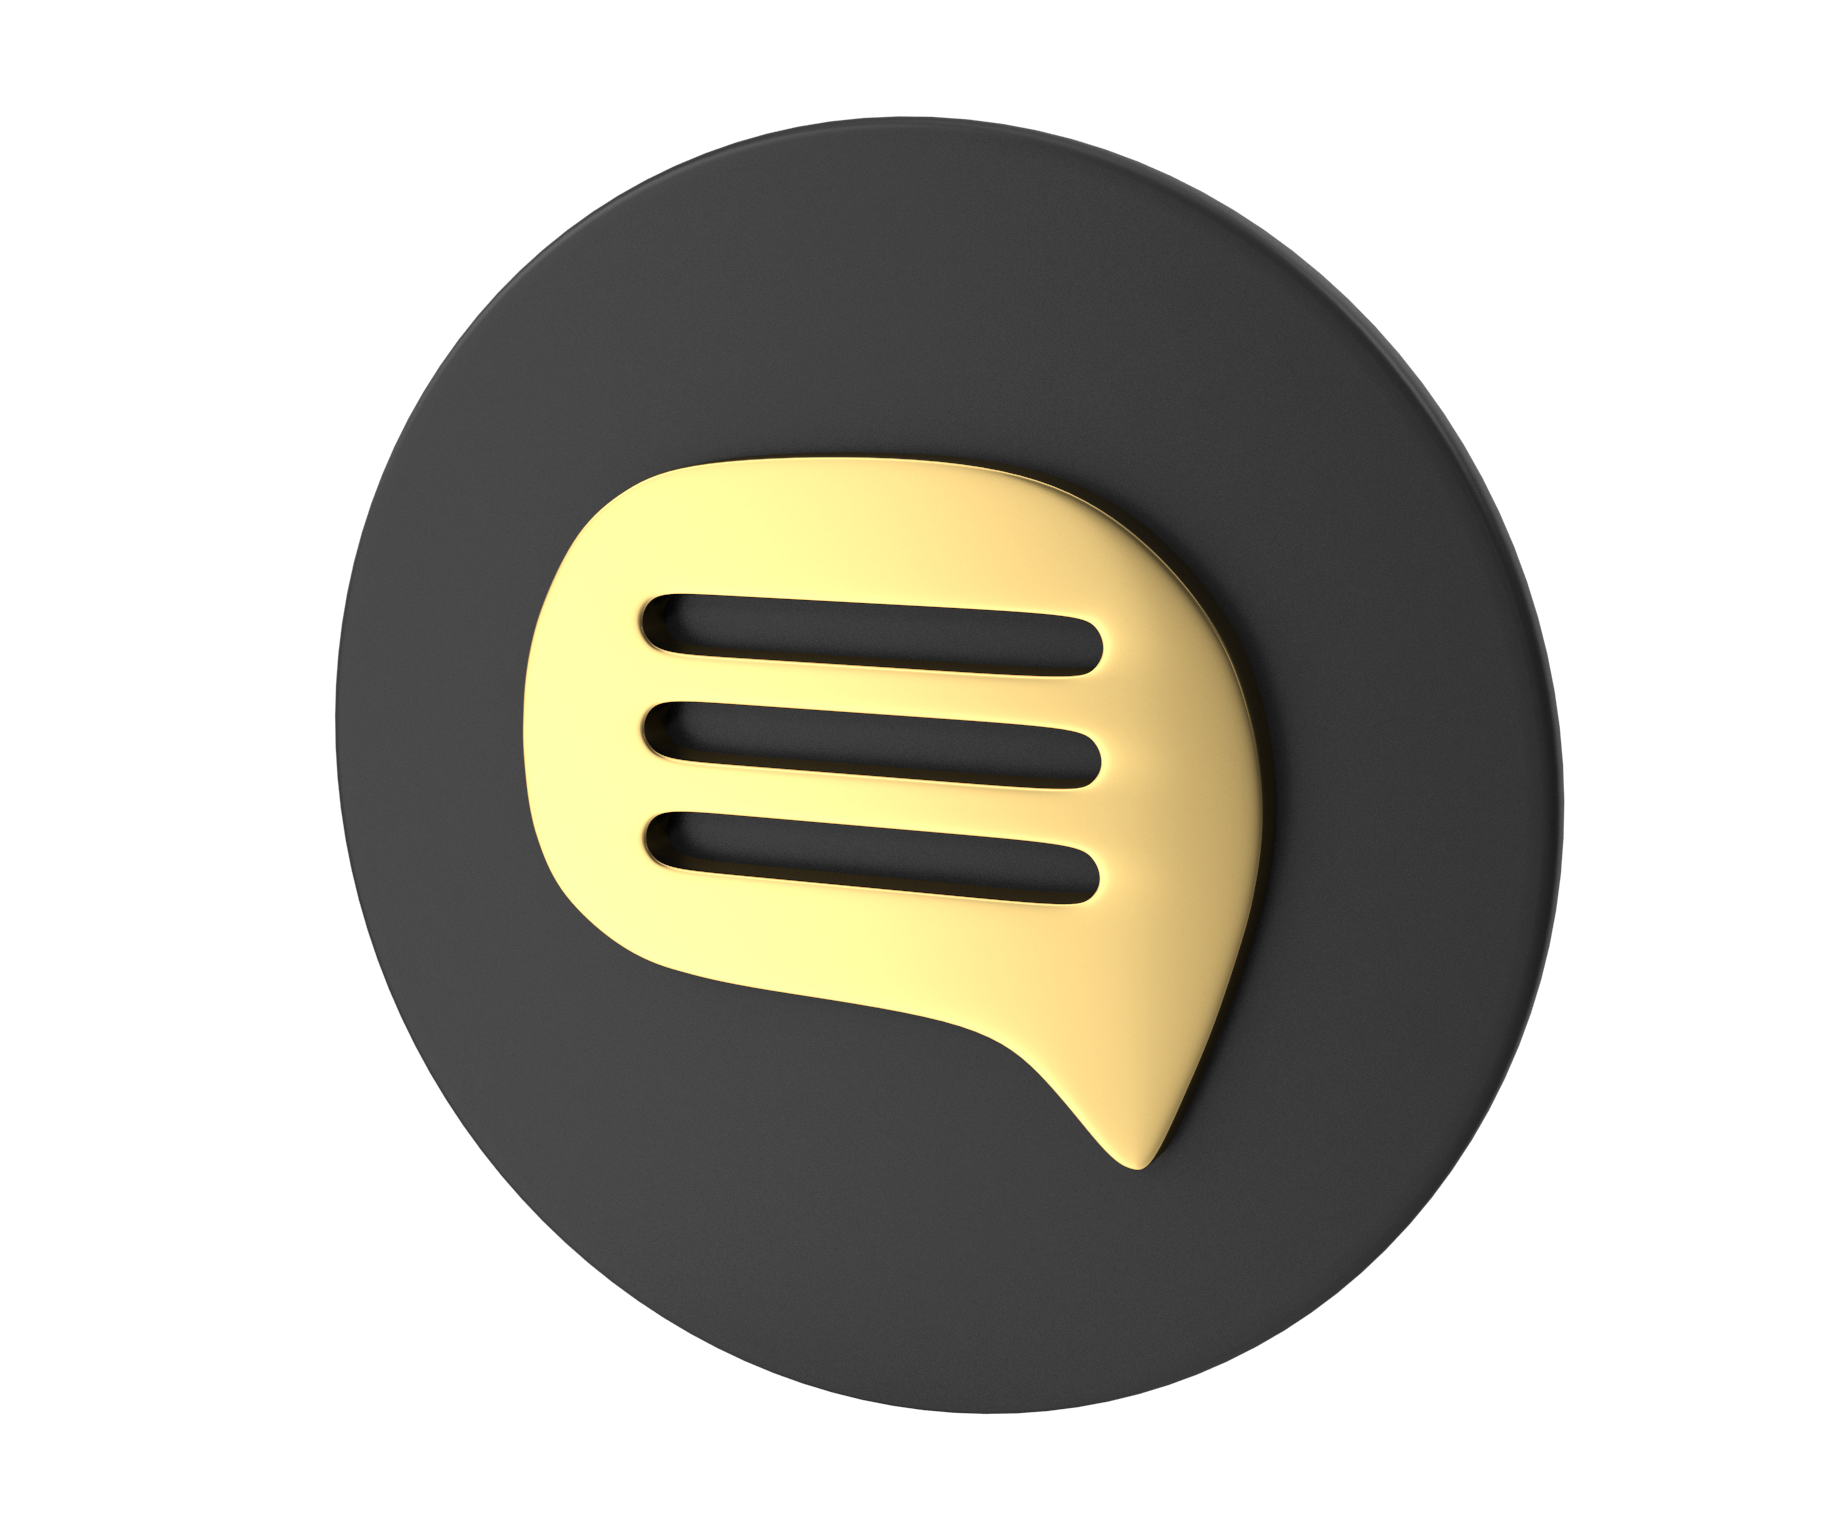 Golden Speech Bubble Icon on Grey Disc